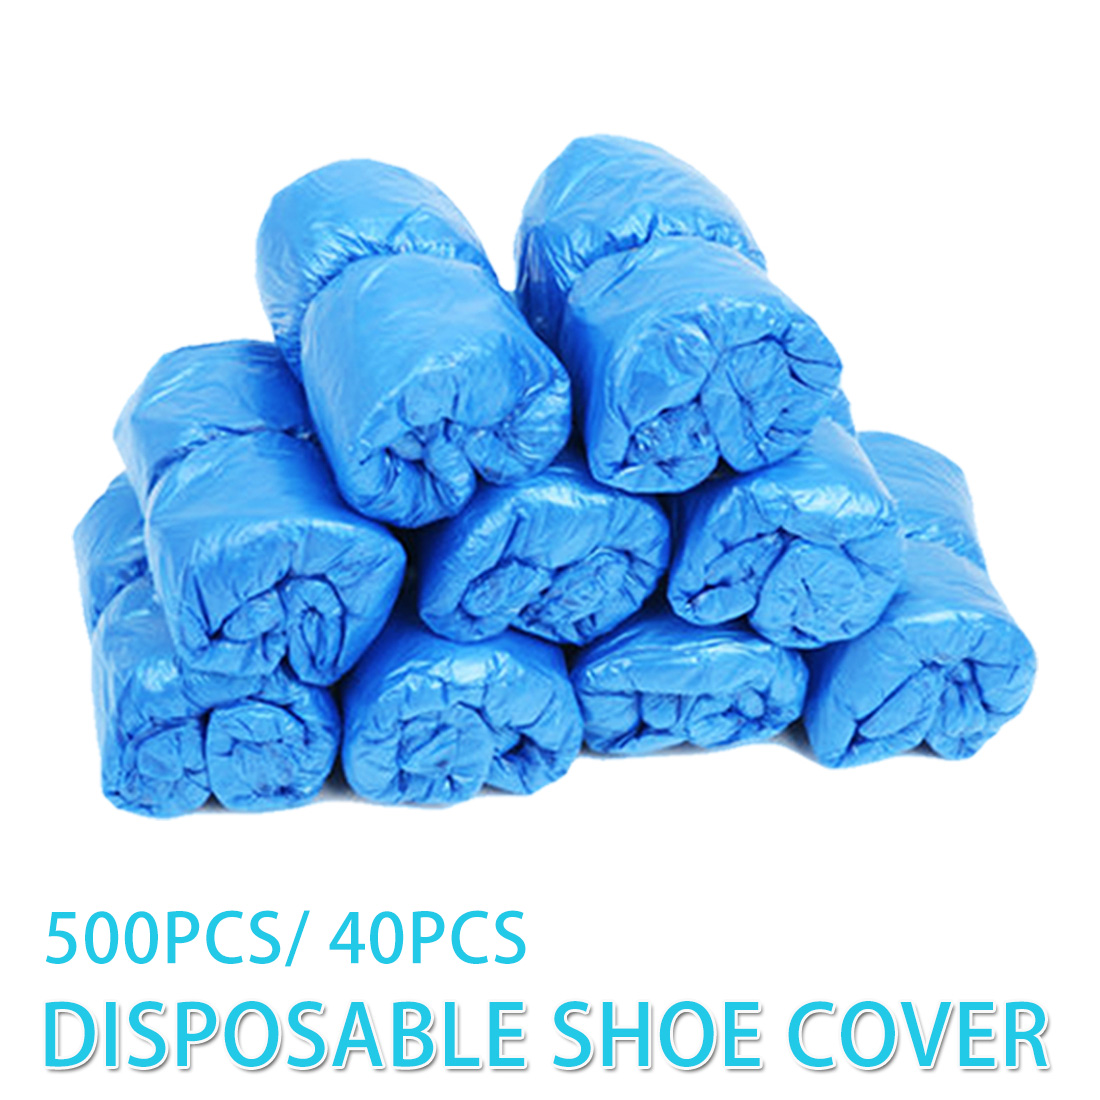 500pcs/ 40pcs Medical Waterproof Boot Covers Plastic Disposable Shoe Covers For Home/ Hotel/ Hospital/ Rainy Season Overshoes